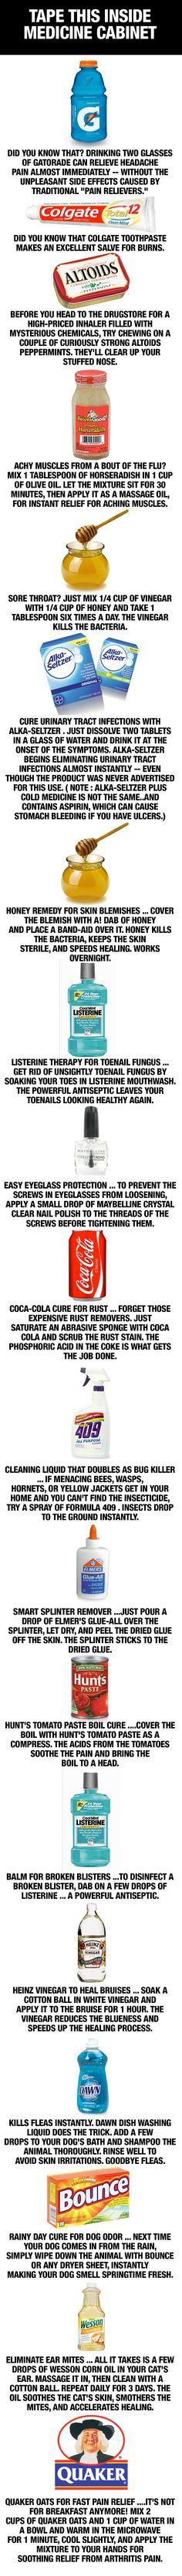 Handy stuff to know! Now if only I could remember it..